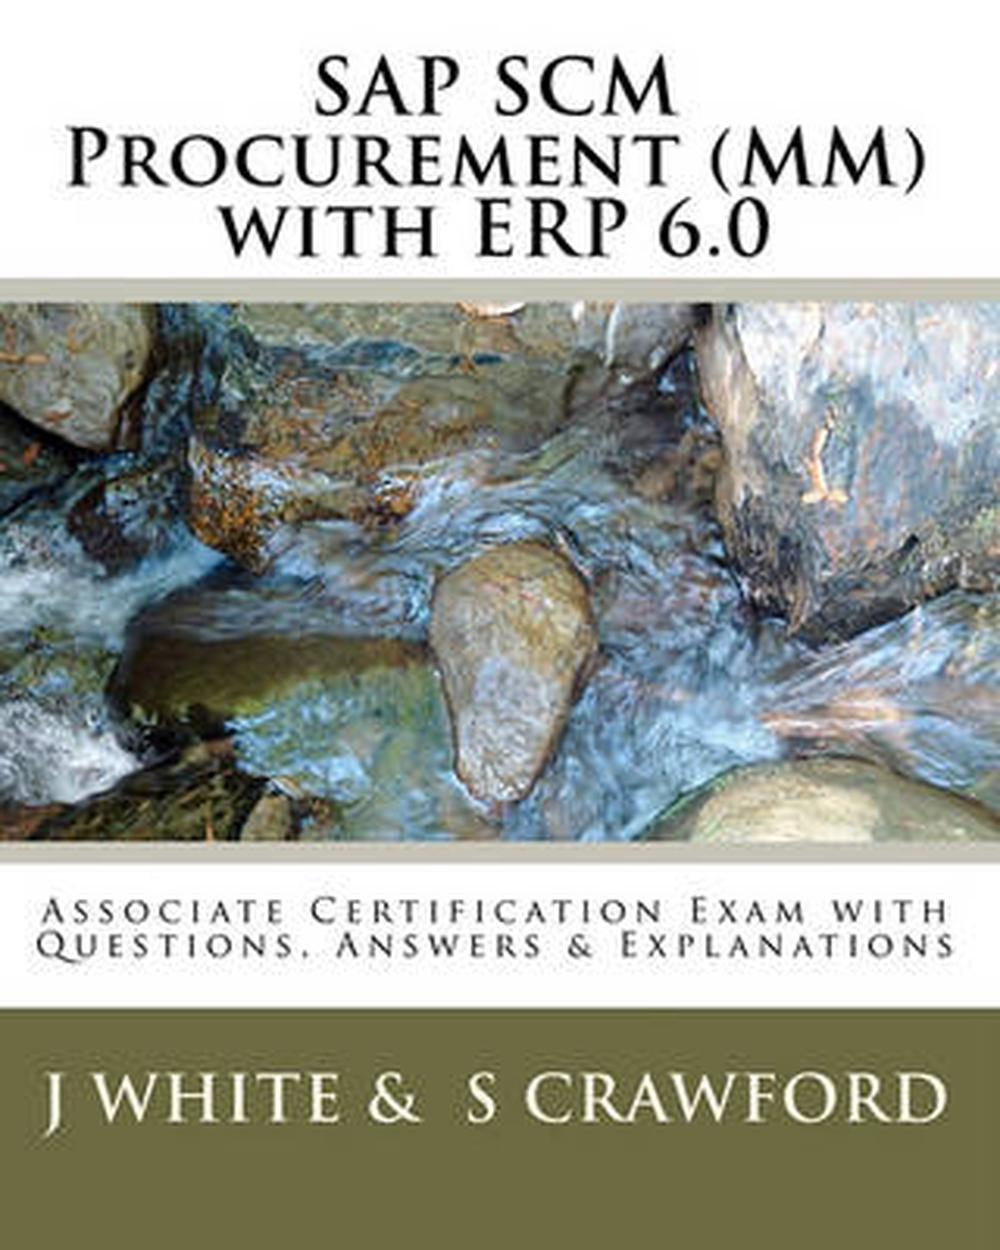 small resolution of sap scm procurement mm with erp 6 0 associate certification exam with questions answers explanations